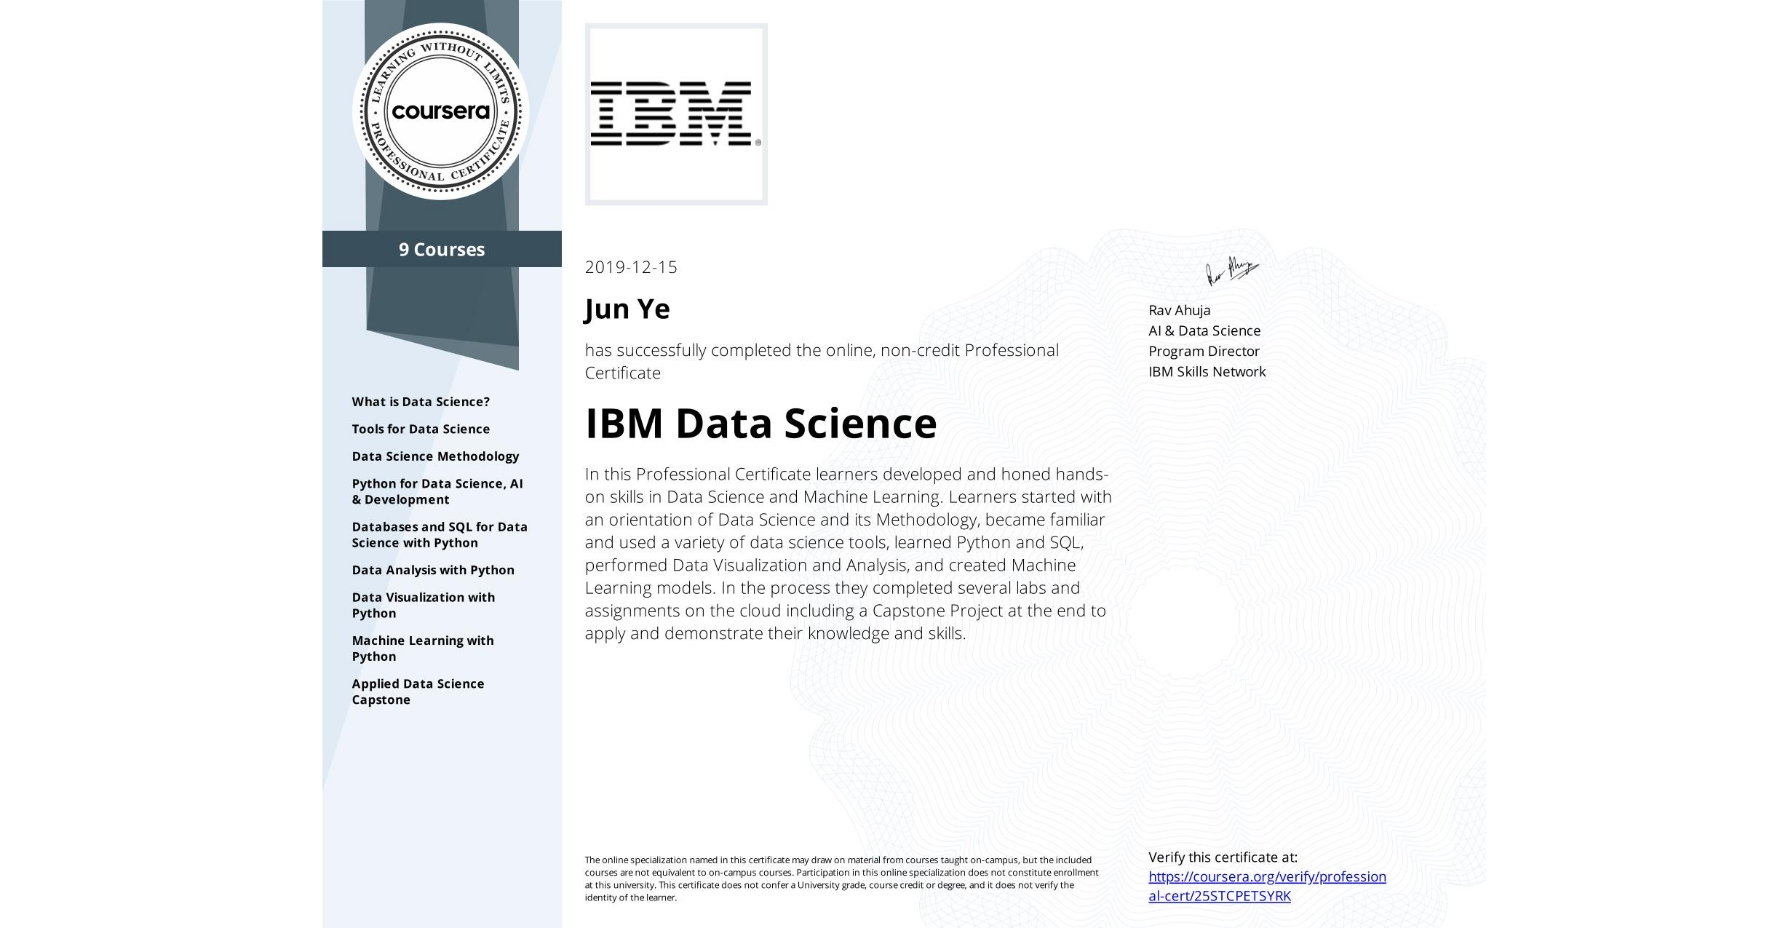 View certificate for Jun Ye, IBM Data Science, offered through Coursera. In this Professional Certificate learners developed and honed hands-on skills in Data Science and Machine Learning. Learners started with an orientation of Data Science and its Methodology, became familiar and used a variety of data science tools, learned Python and SQL, performed Data Visualization and Analysis, and created Machine Learning models.  In the process they completed several labs and assignments on the cloud including a Capstone Project at the end to apply and demonstrate their knowledge and skills.